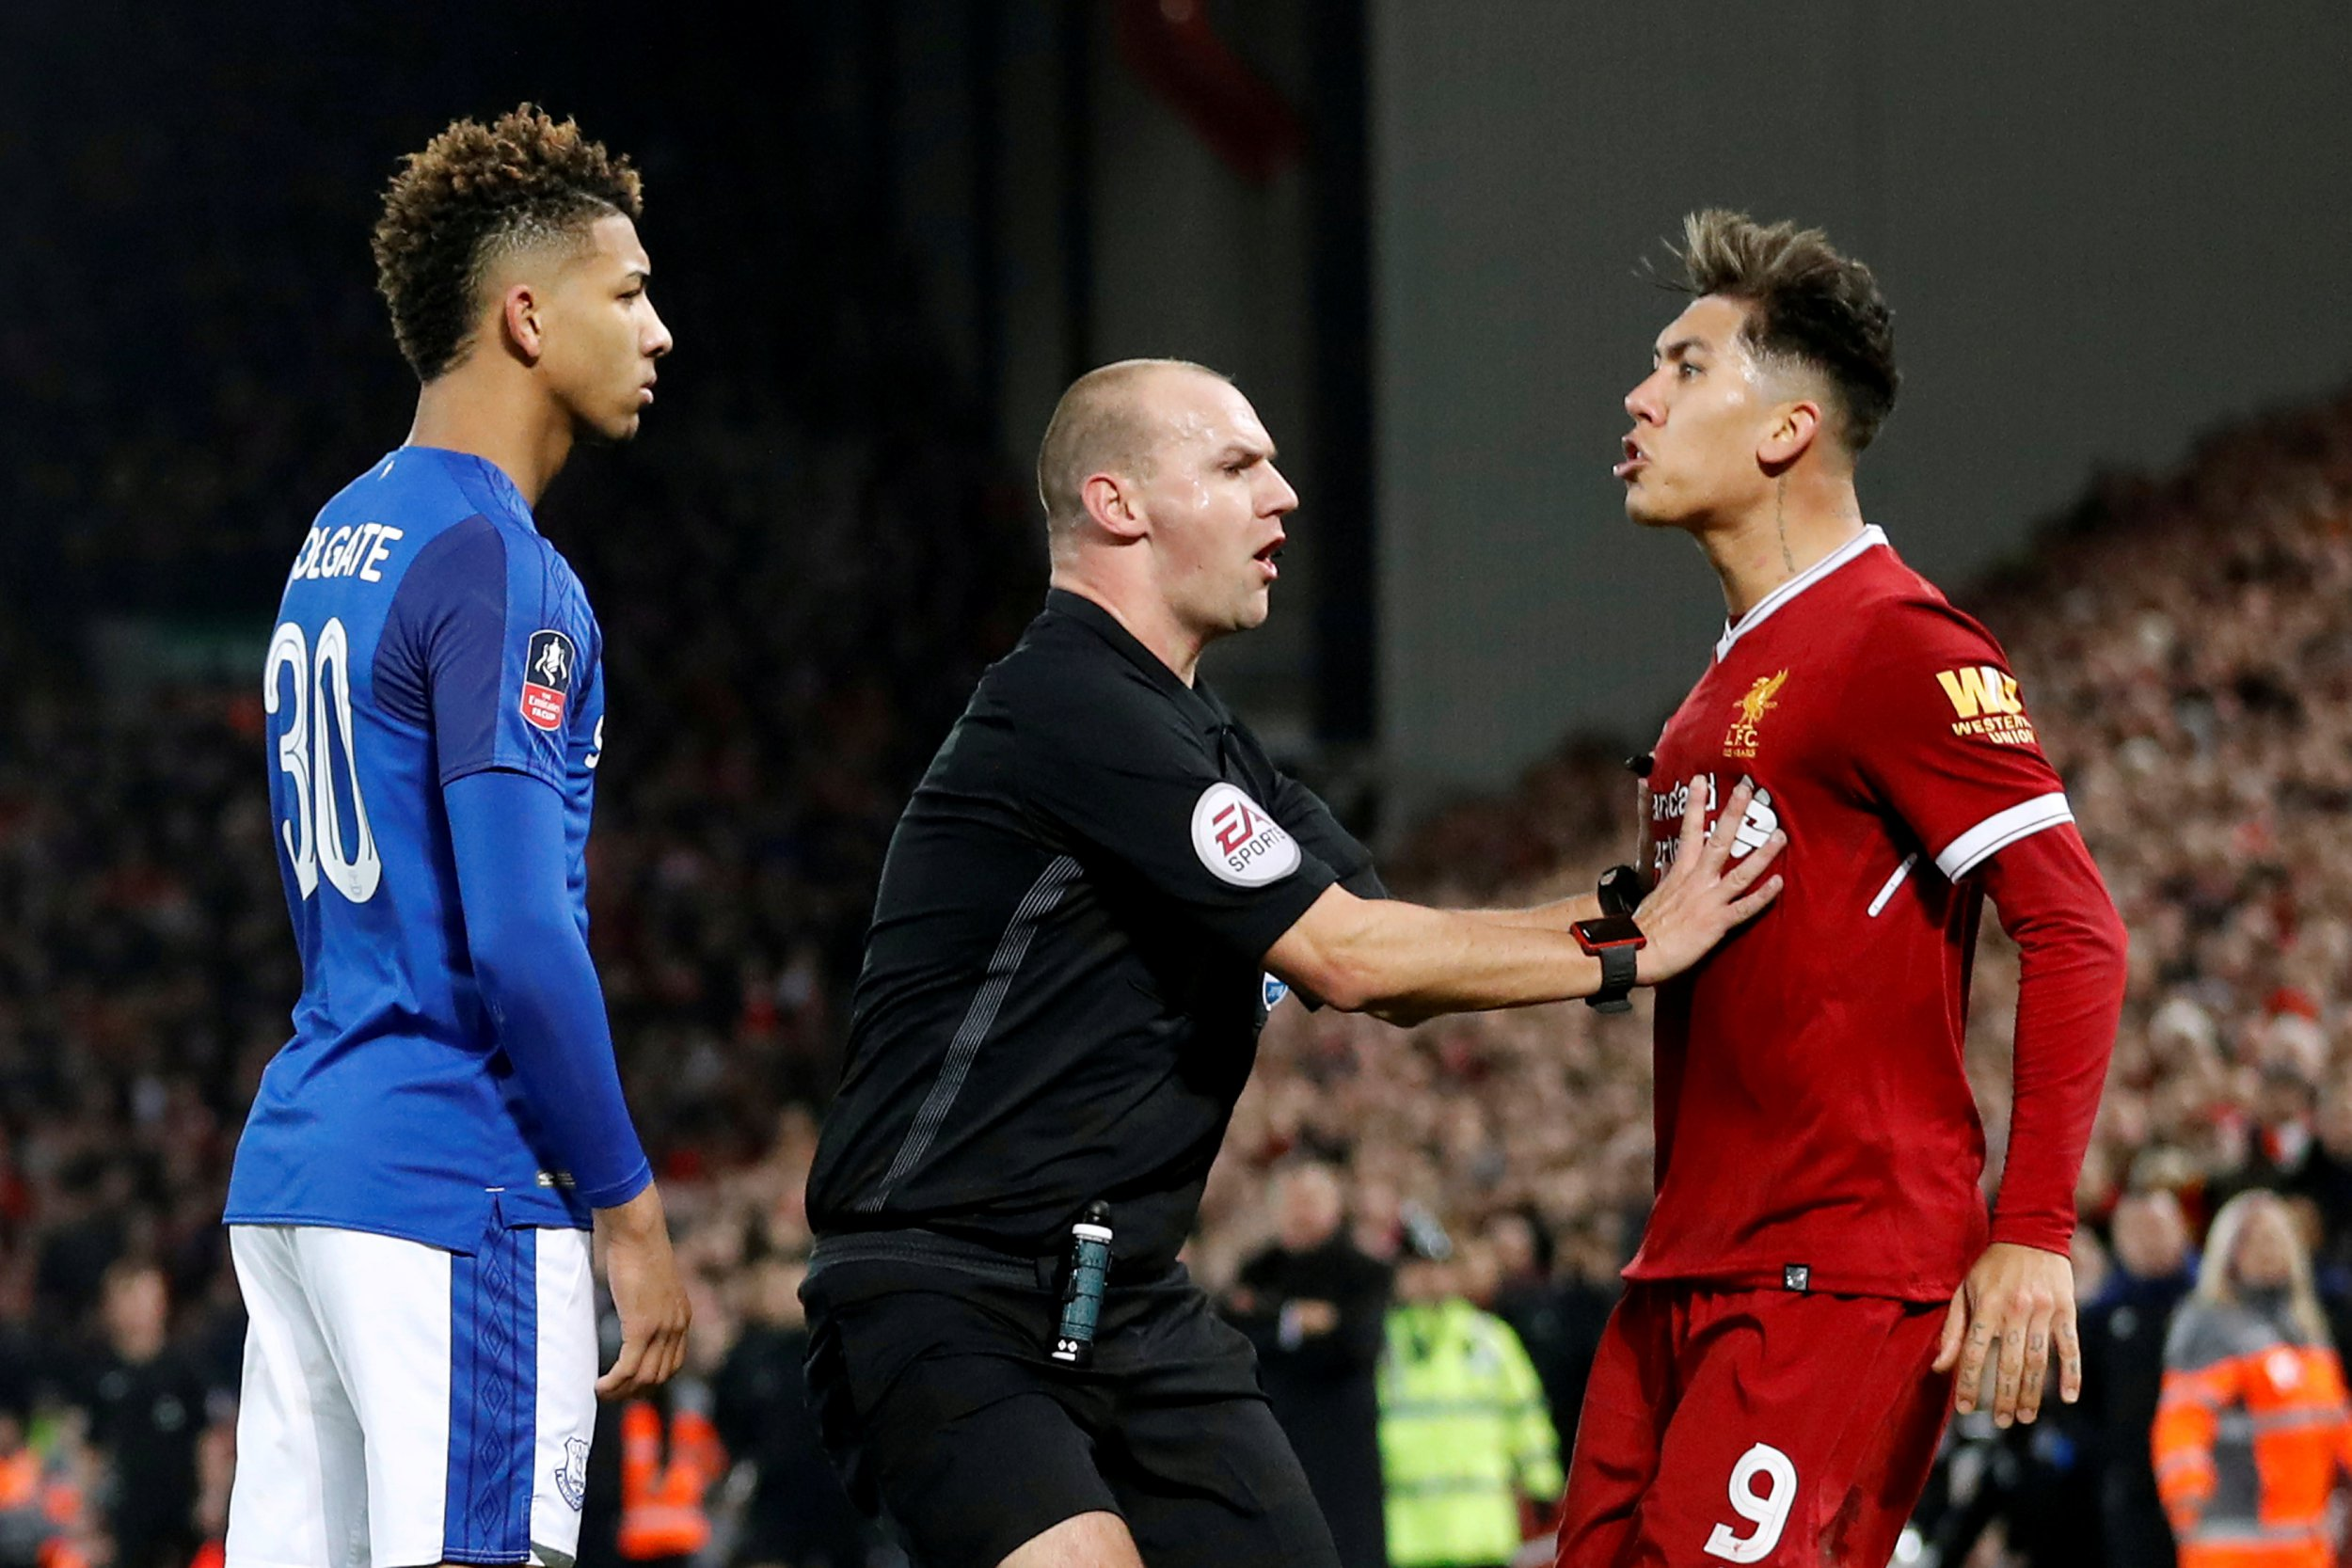 Roberto Firmino speaks out after FA clear Liverpool forward of racially abusing Mason Holgate